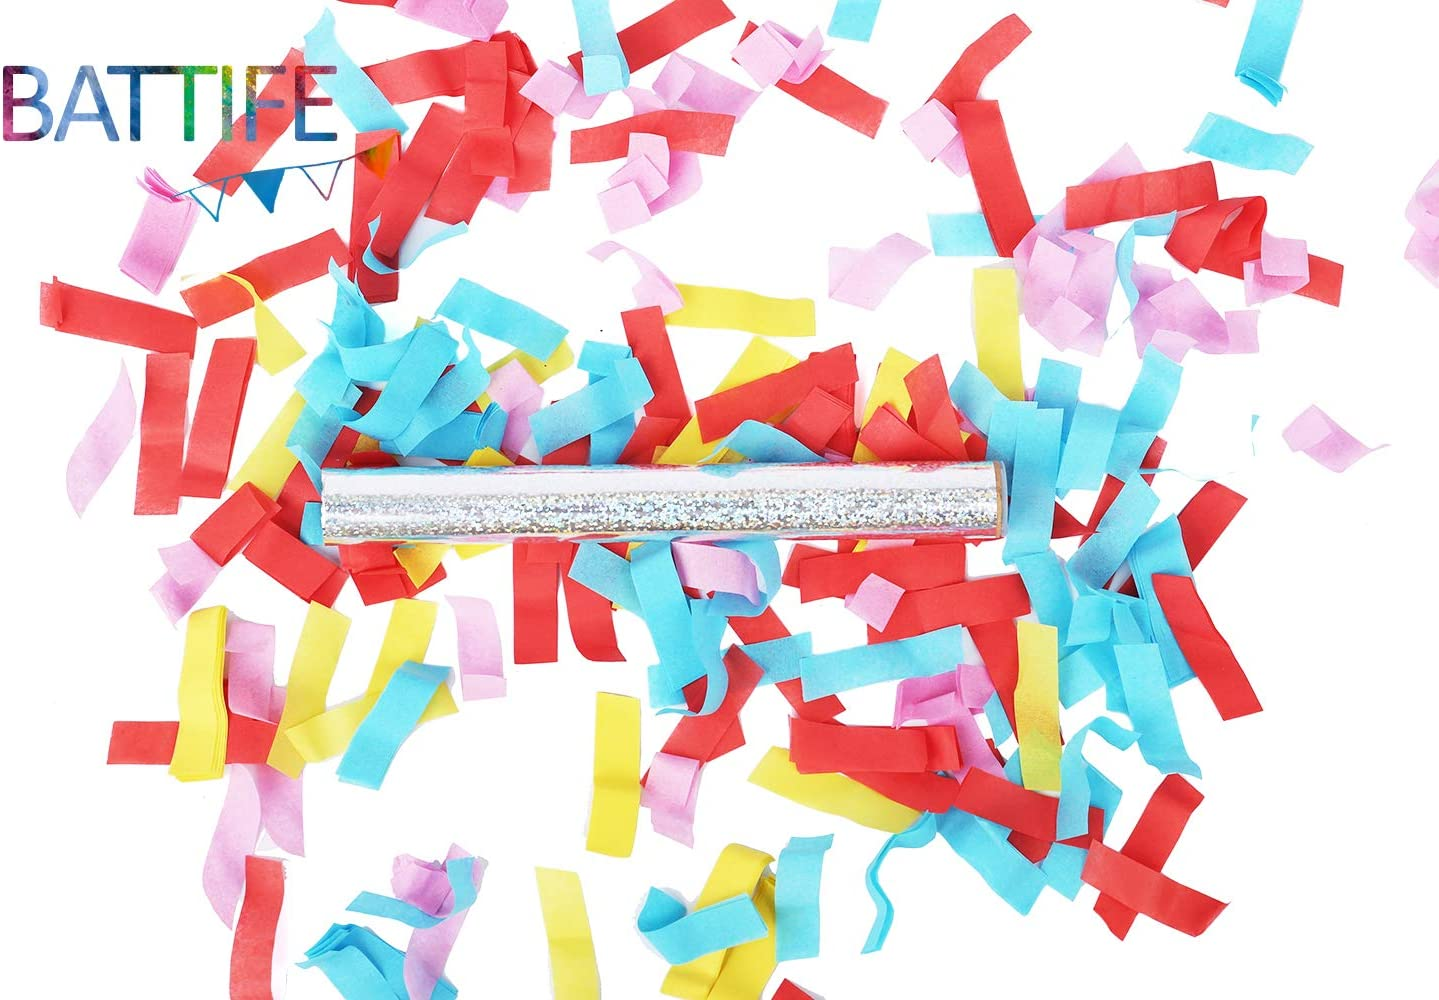 Anniversary 7.8inch Birthday Party Battife Confetti Wands 20Pack Colorful Biodegradable Tissue Confetti Flick Flutter Sticks for Wedding Celebrations